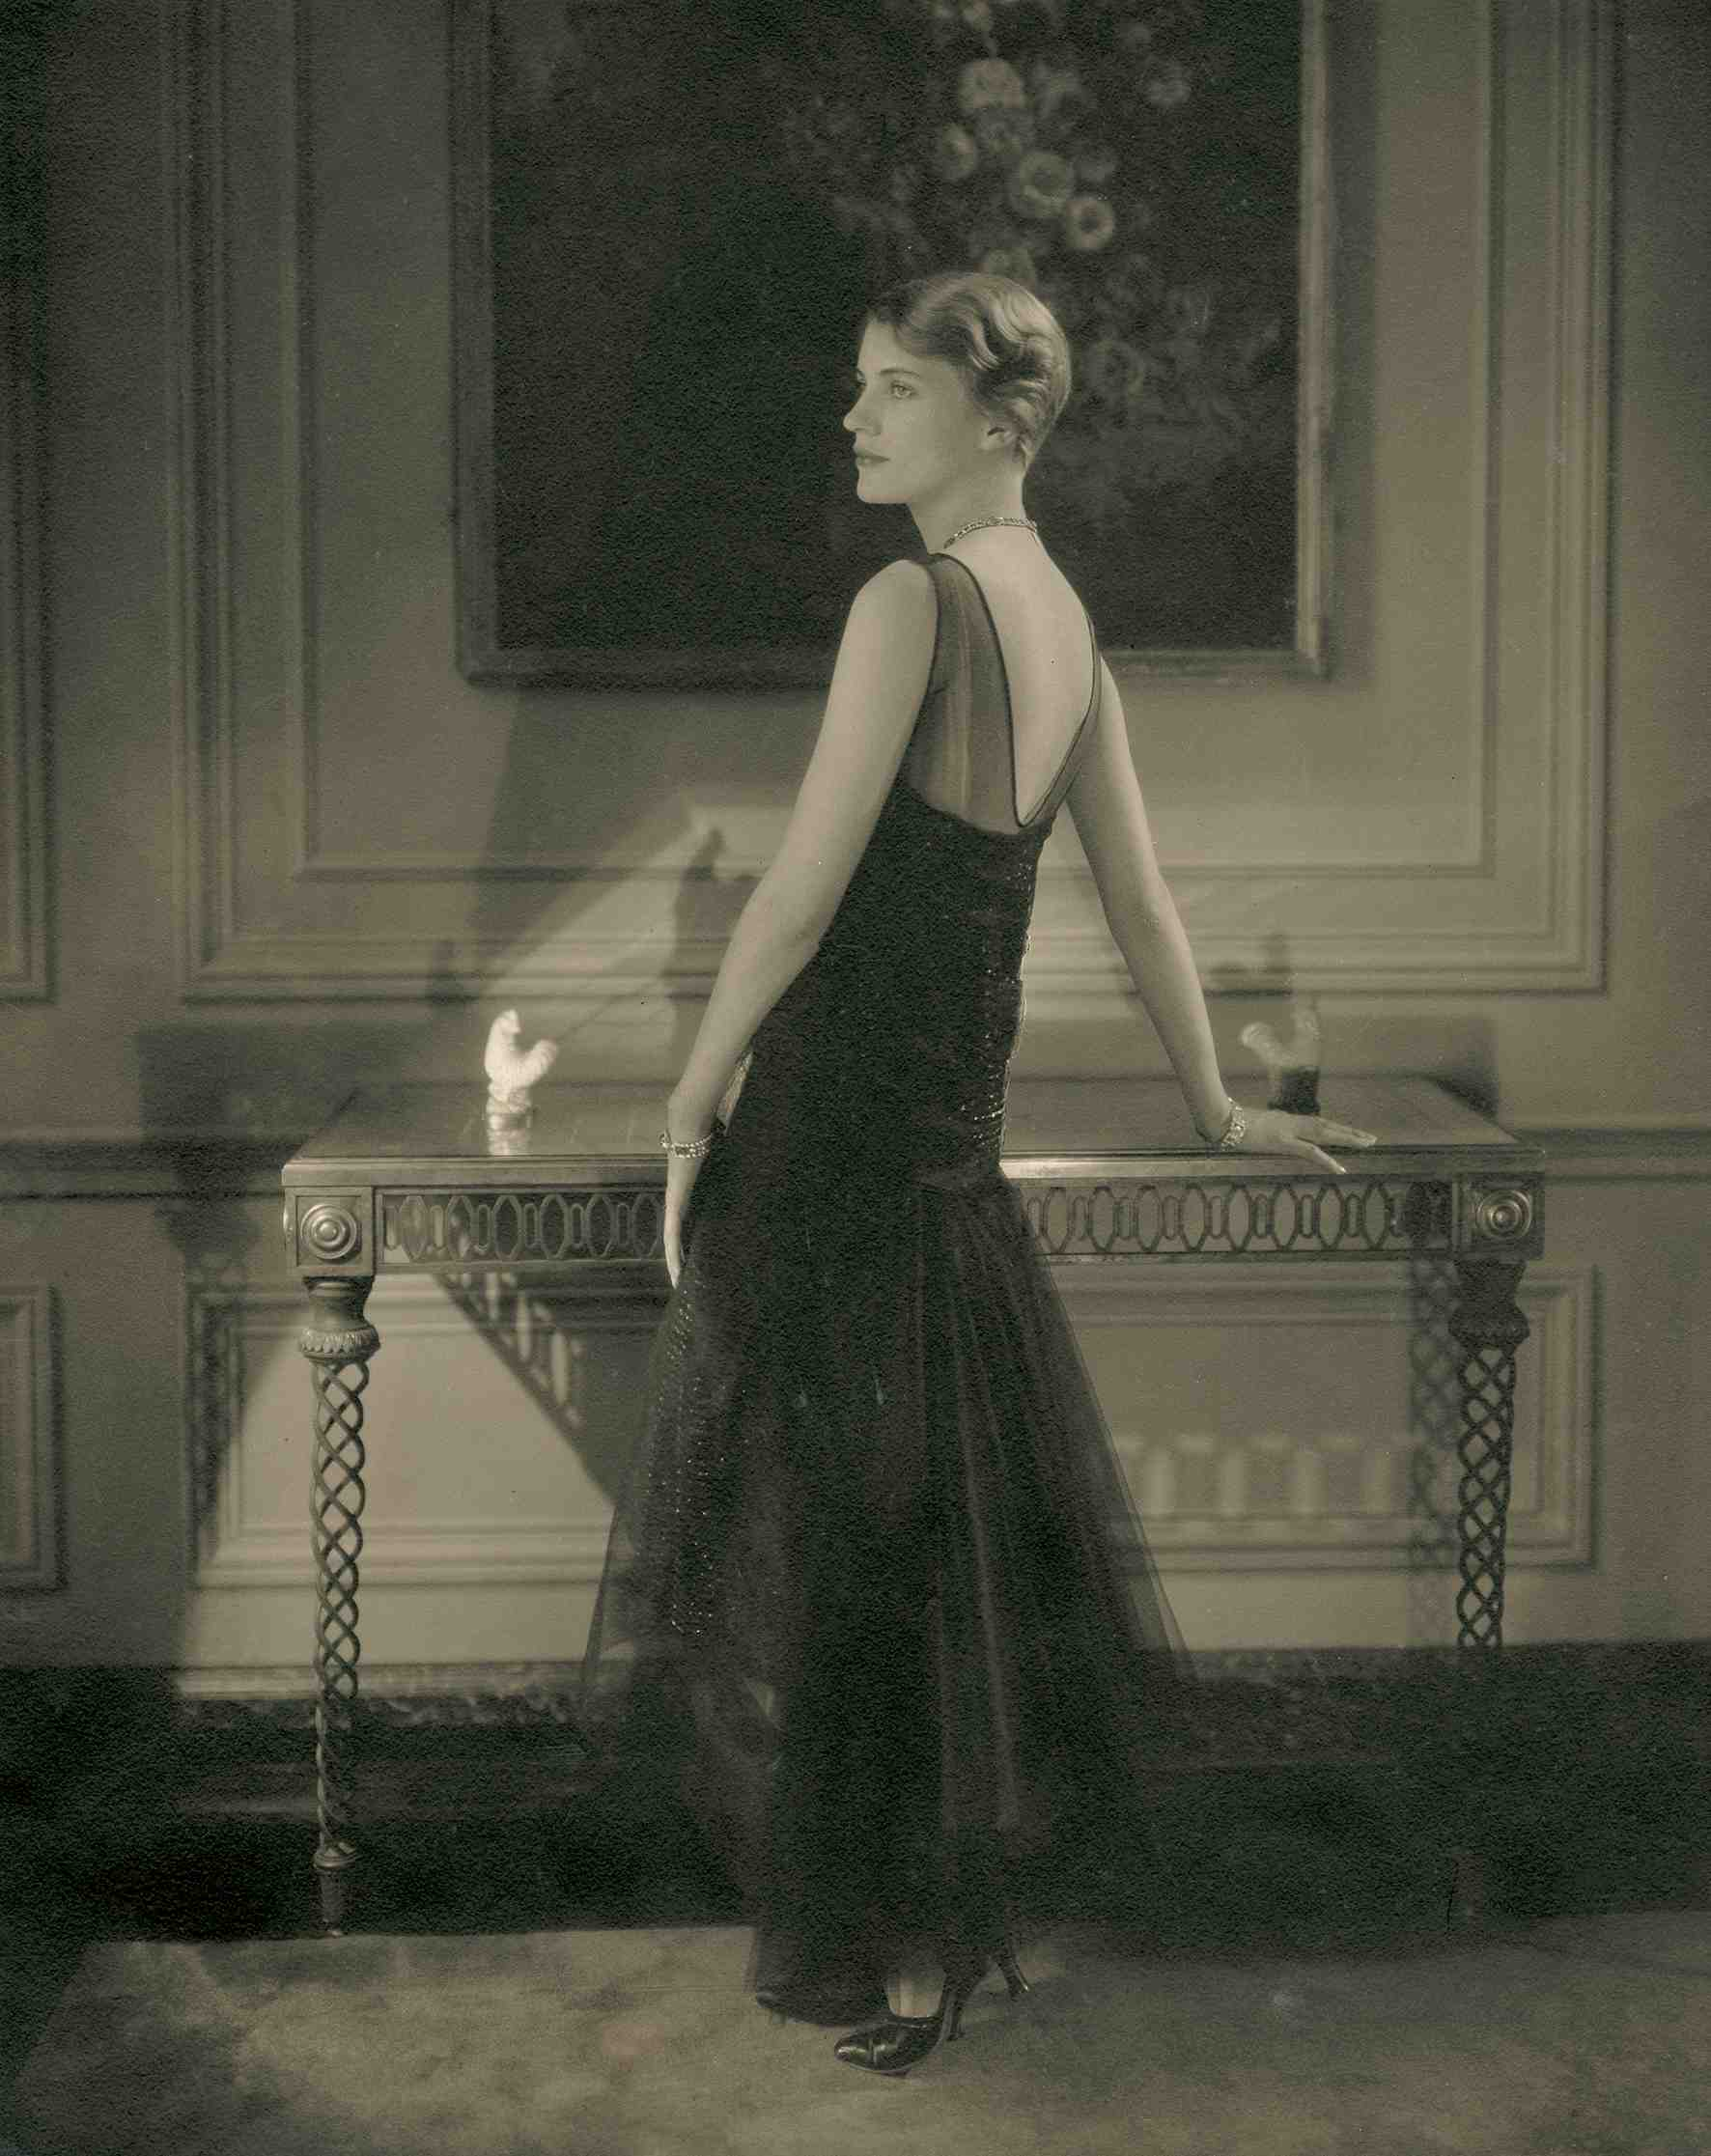 Edward Steichen - Lee Miller wearing a black tulle evening dress by Lelong; black satin pumps by Delman and jewels by Marcus, standing in Condé Nast's apartment, 1928 - Condé Nast Publications, New York